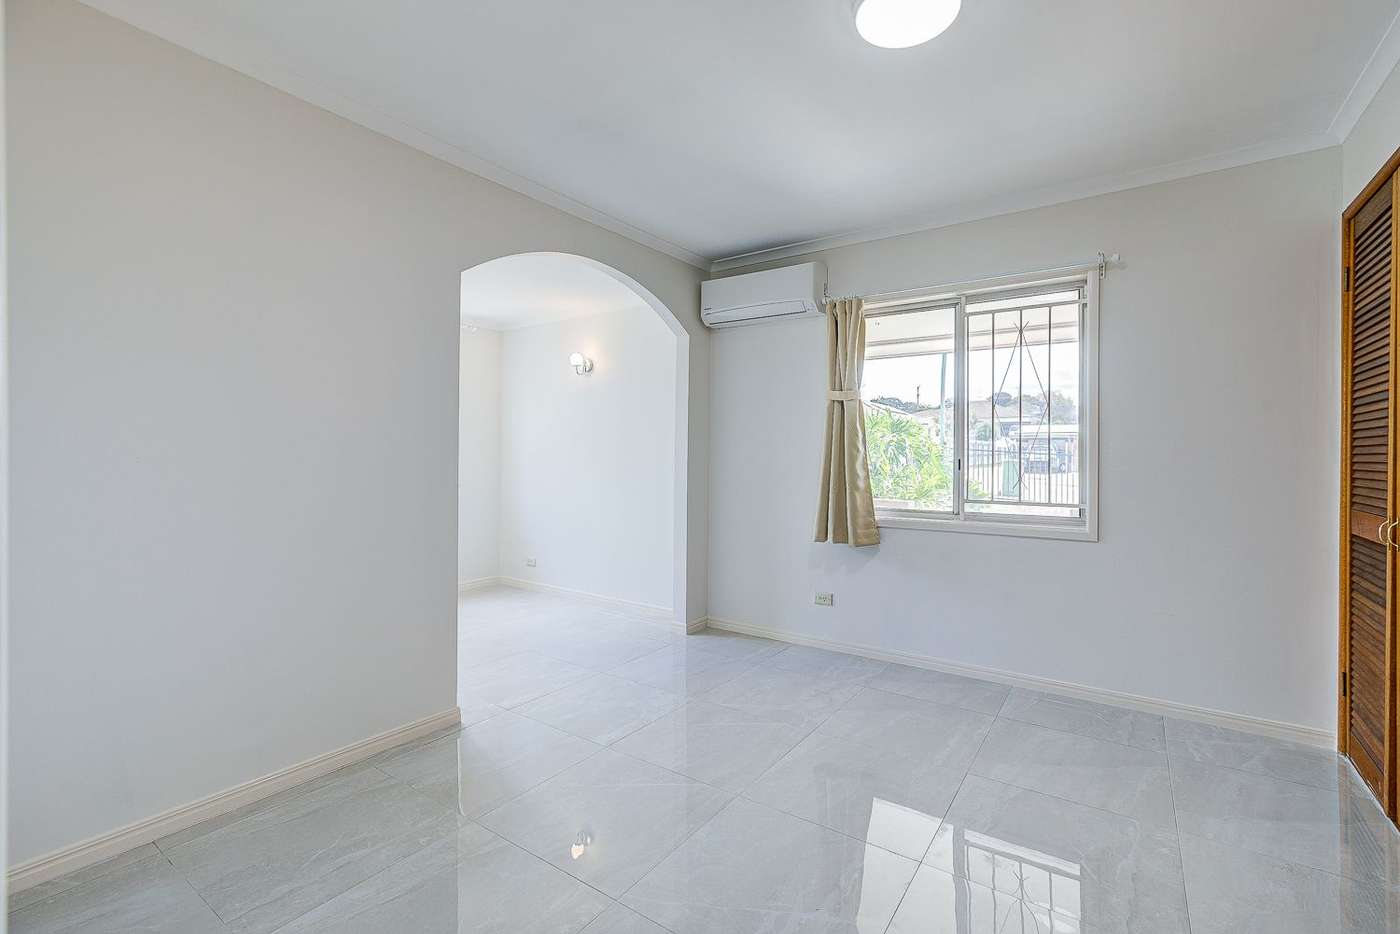 Seventh view of Homely house listing, 8 Lamorna Street, Rochedale South QLD 4123